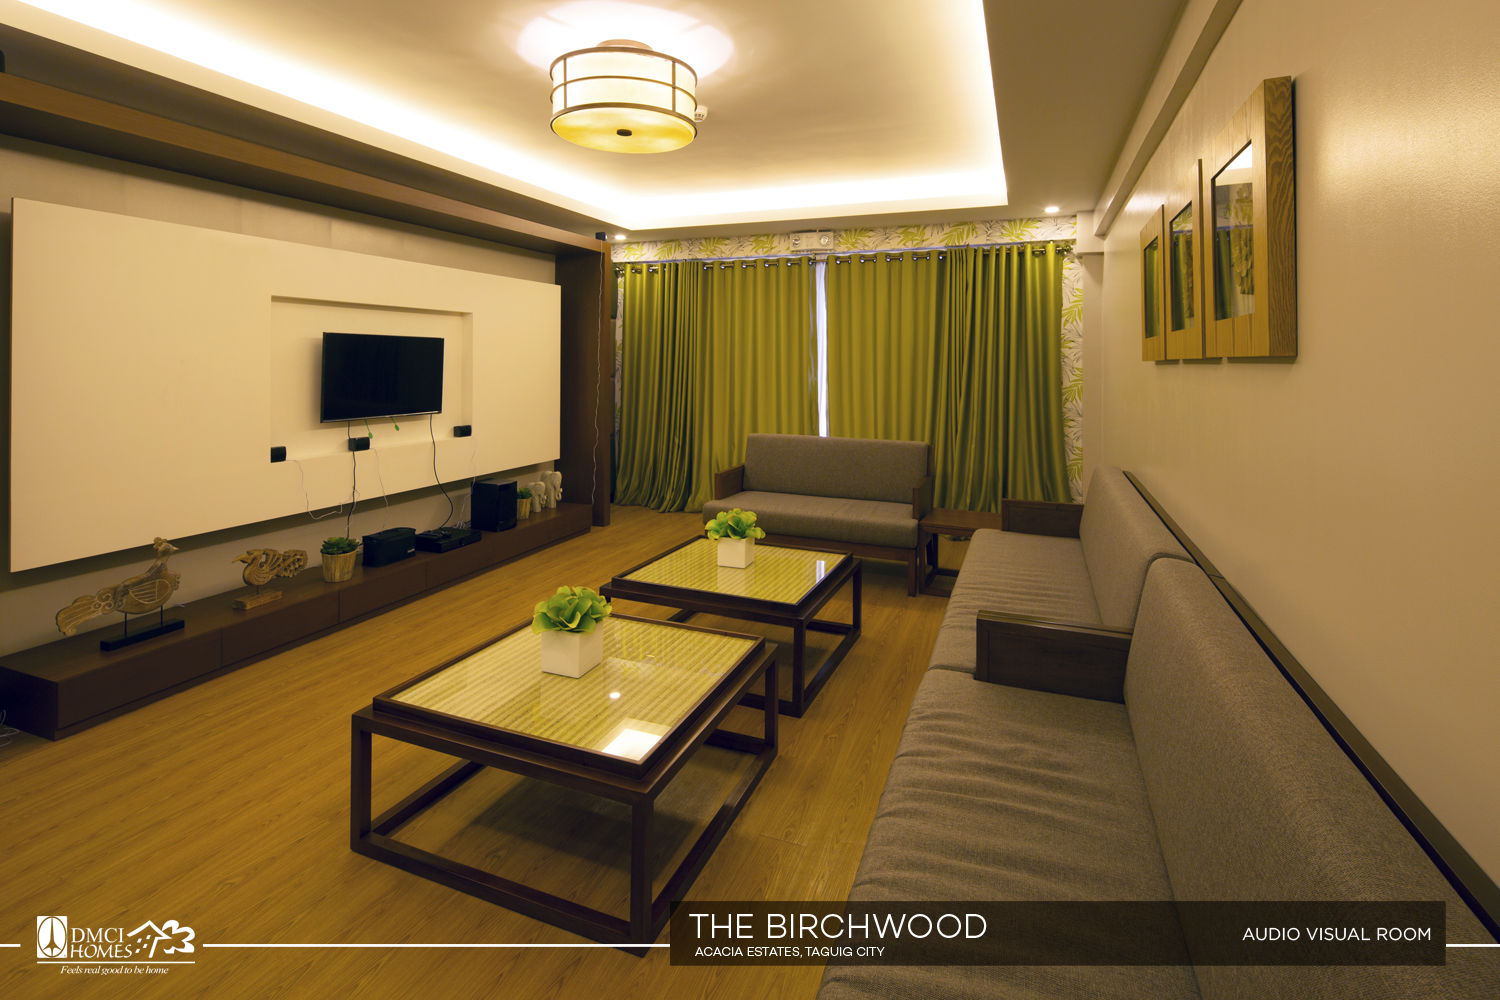 The Birchwood audio visual room